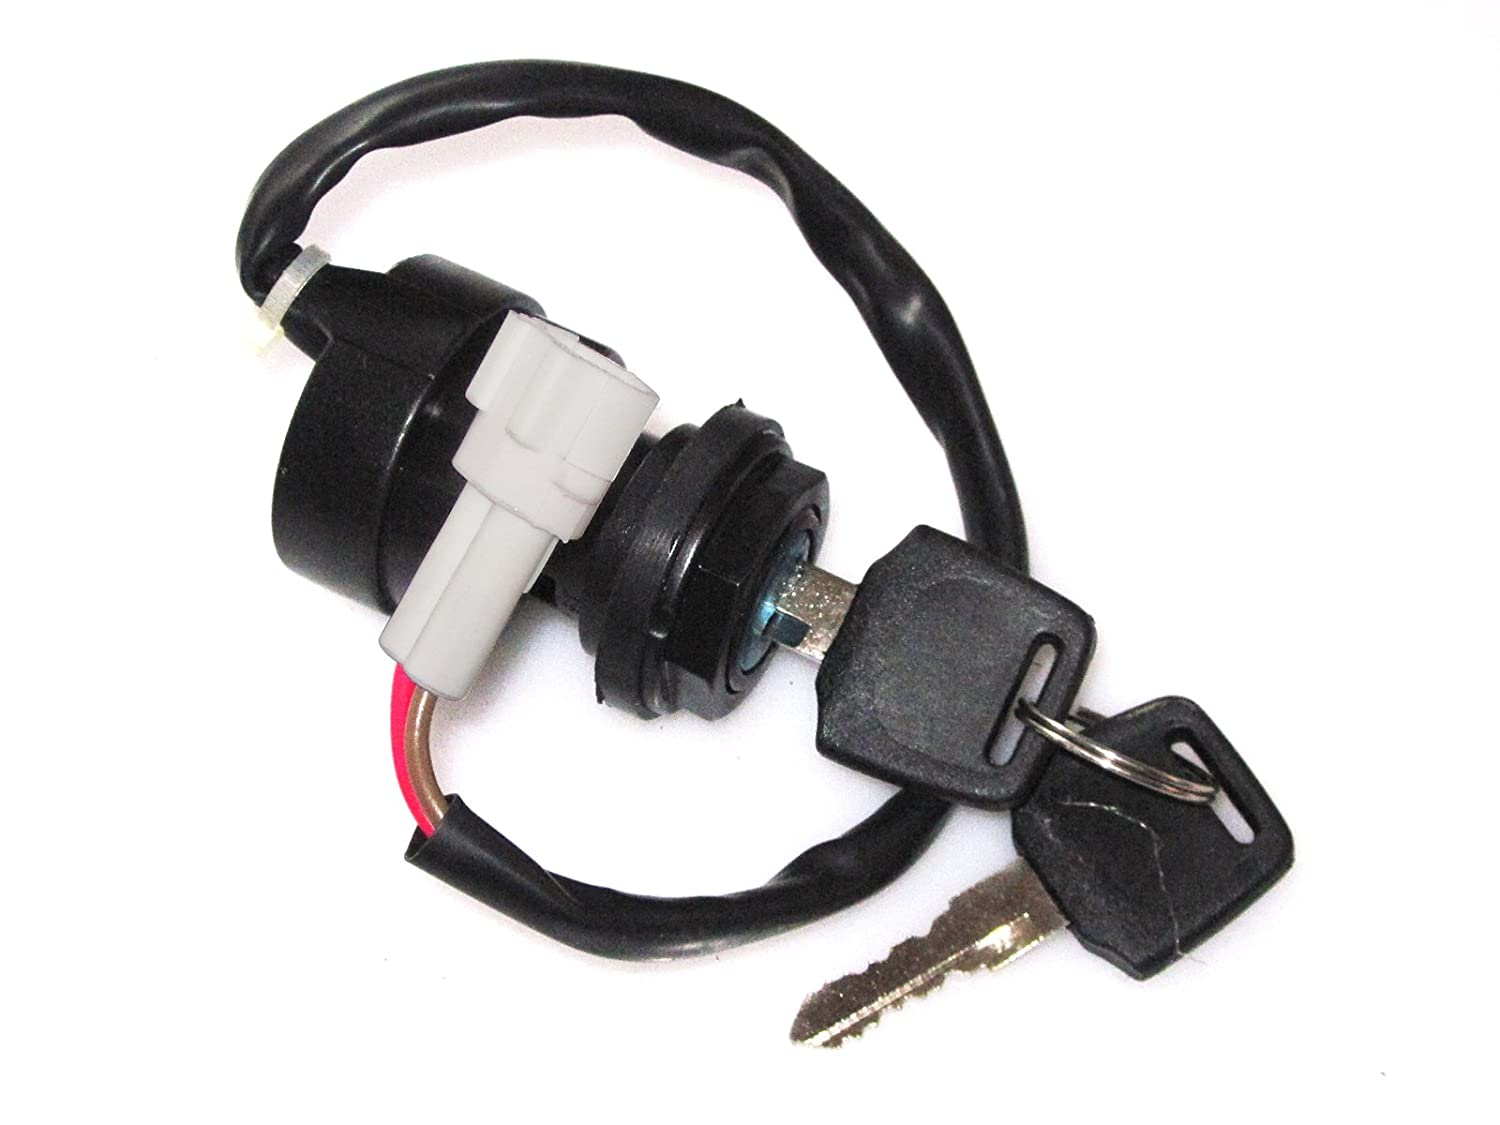 71APaKhnY5L._SL1500_ amazon com 2 wire ignition key switch yamaha atv raptor warrior 2002 Yamaha Big Bear Wiring Diagram at aneh.co